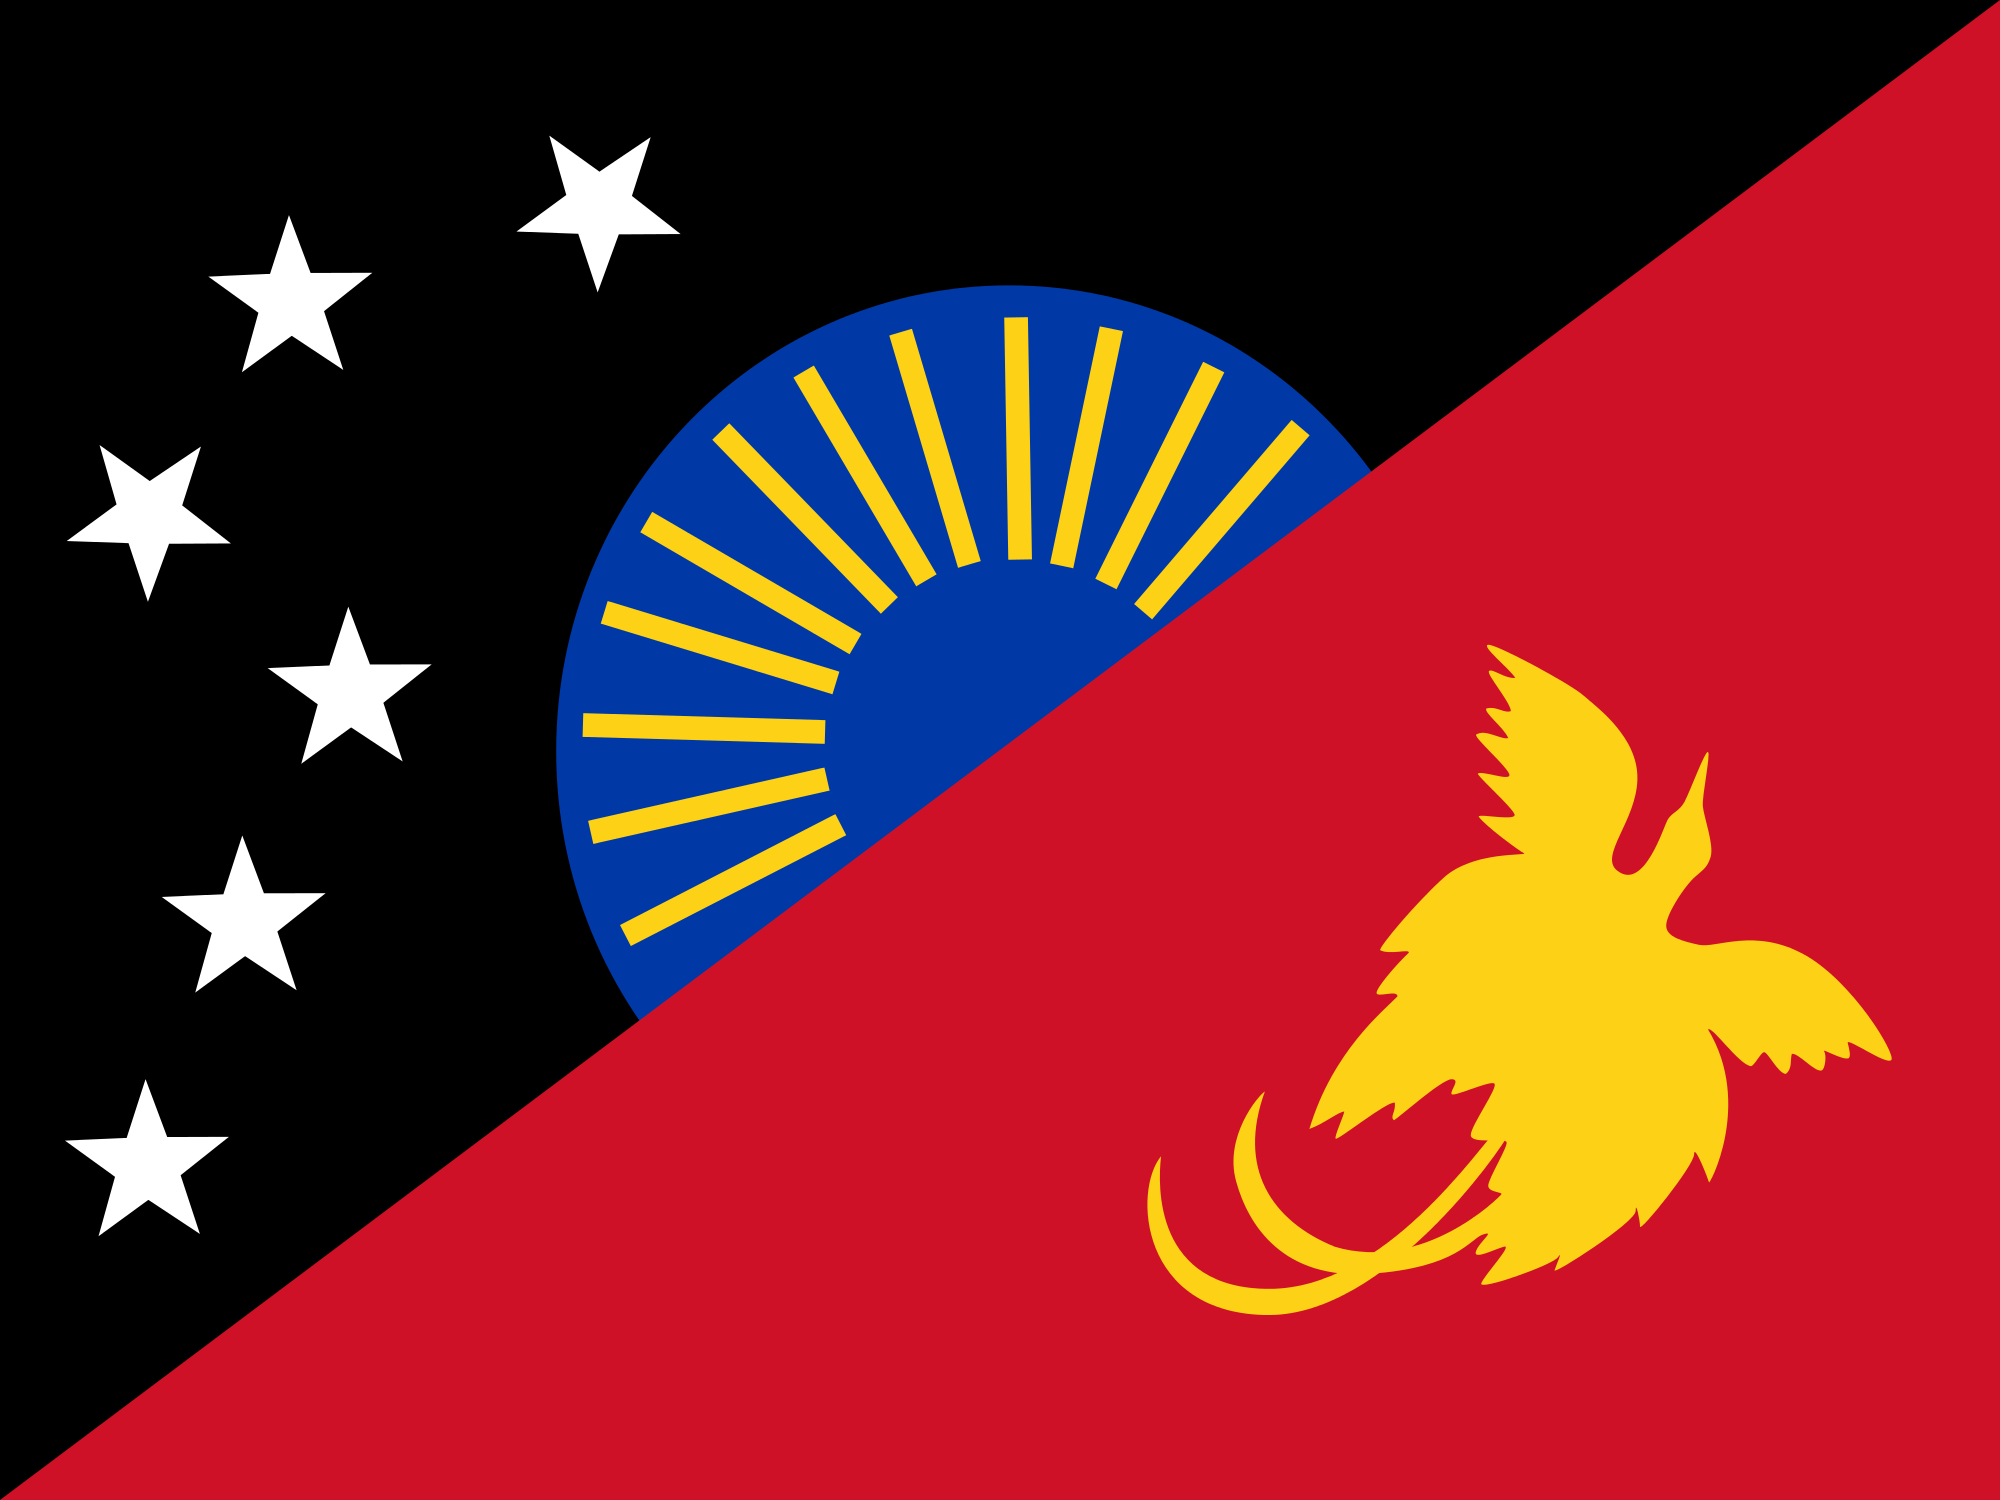 Sandaun Province | Flags of Australia And Countries Of Oceania ...